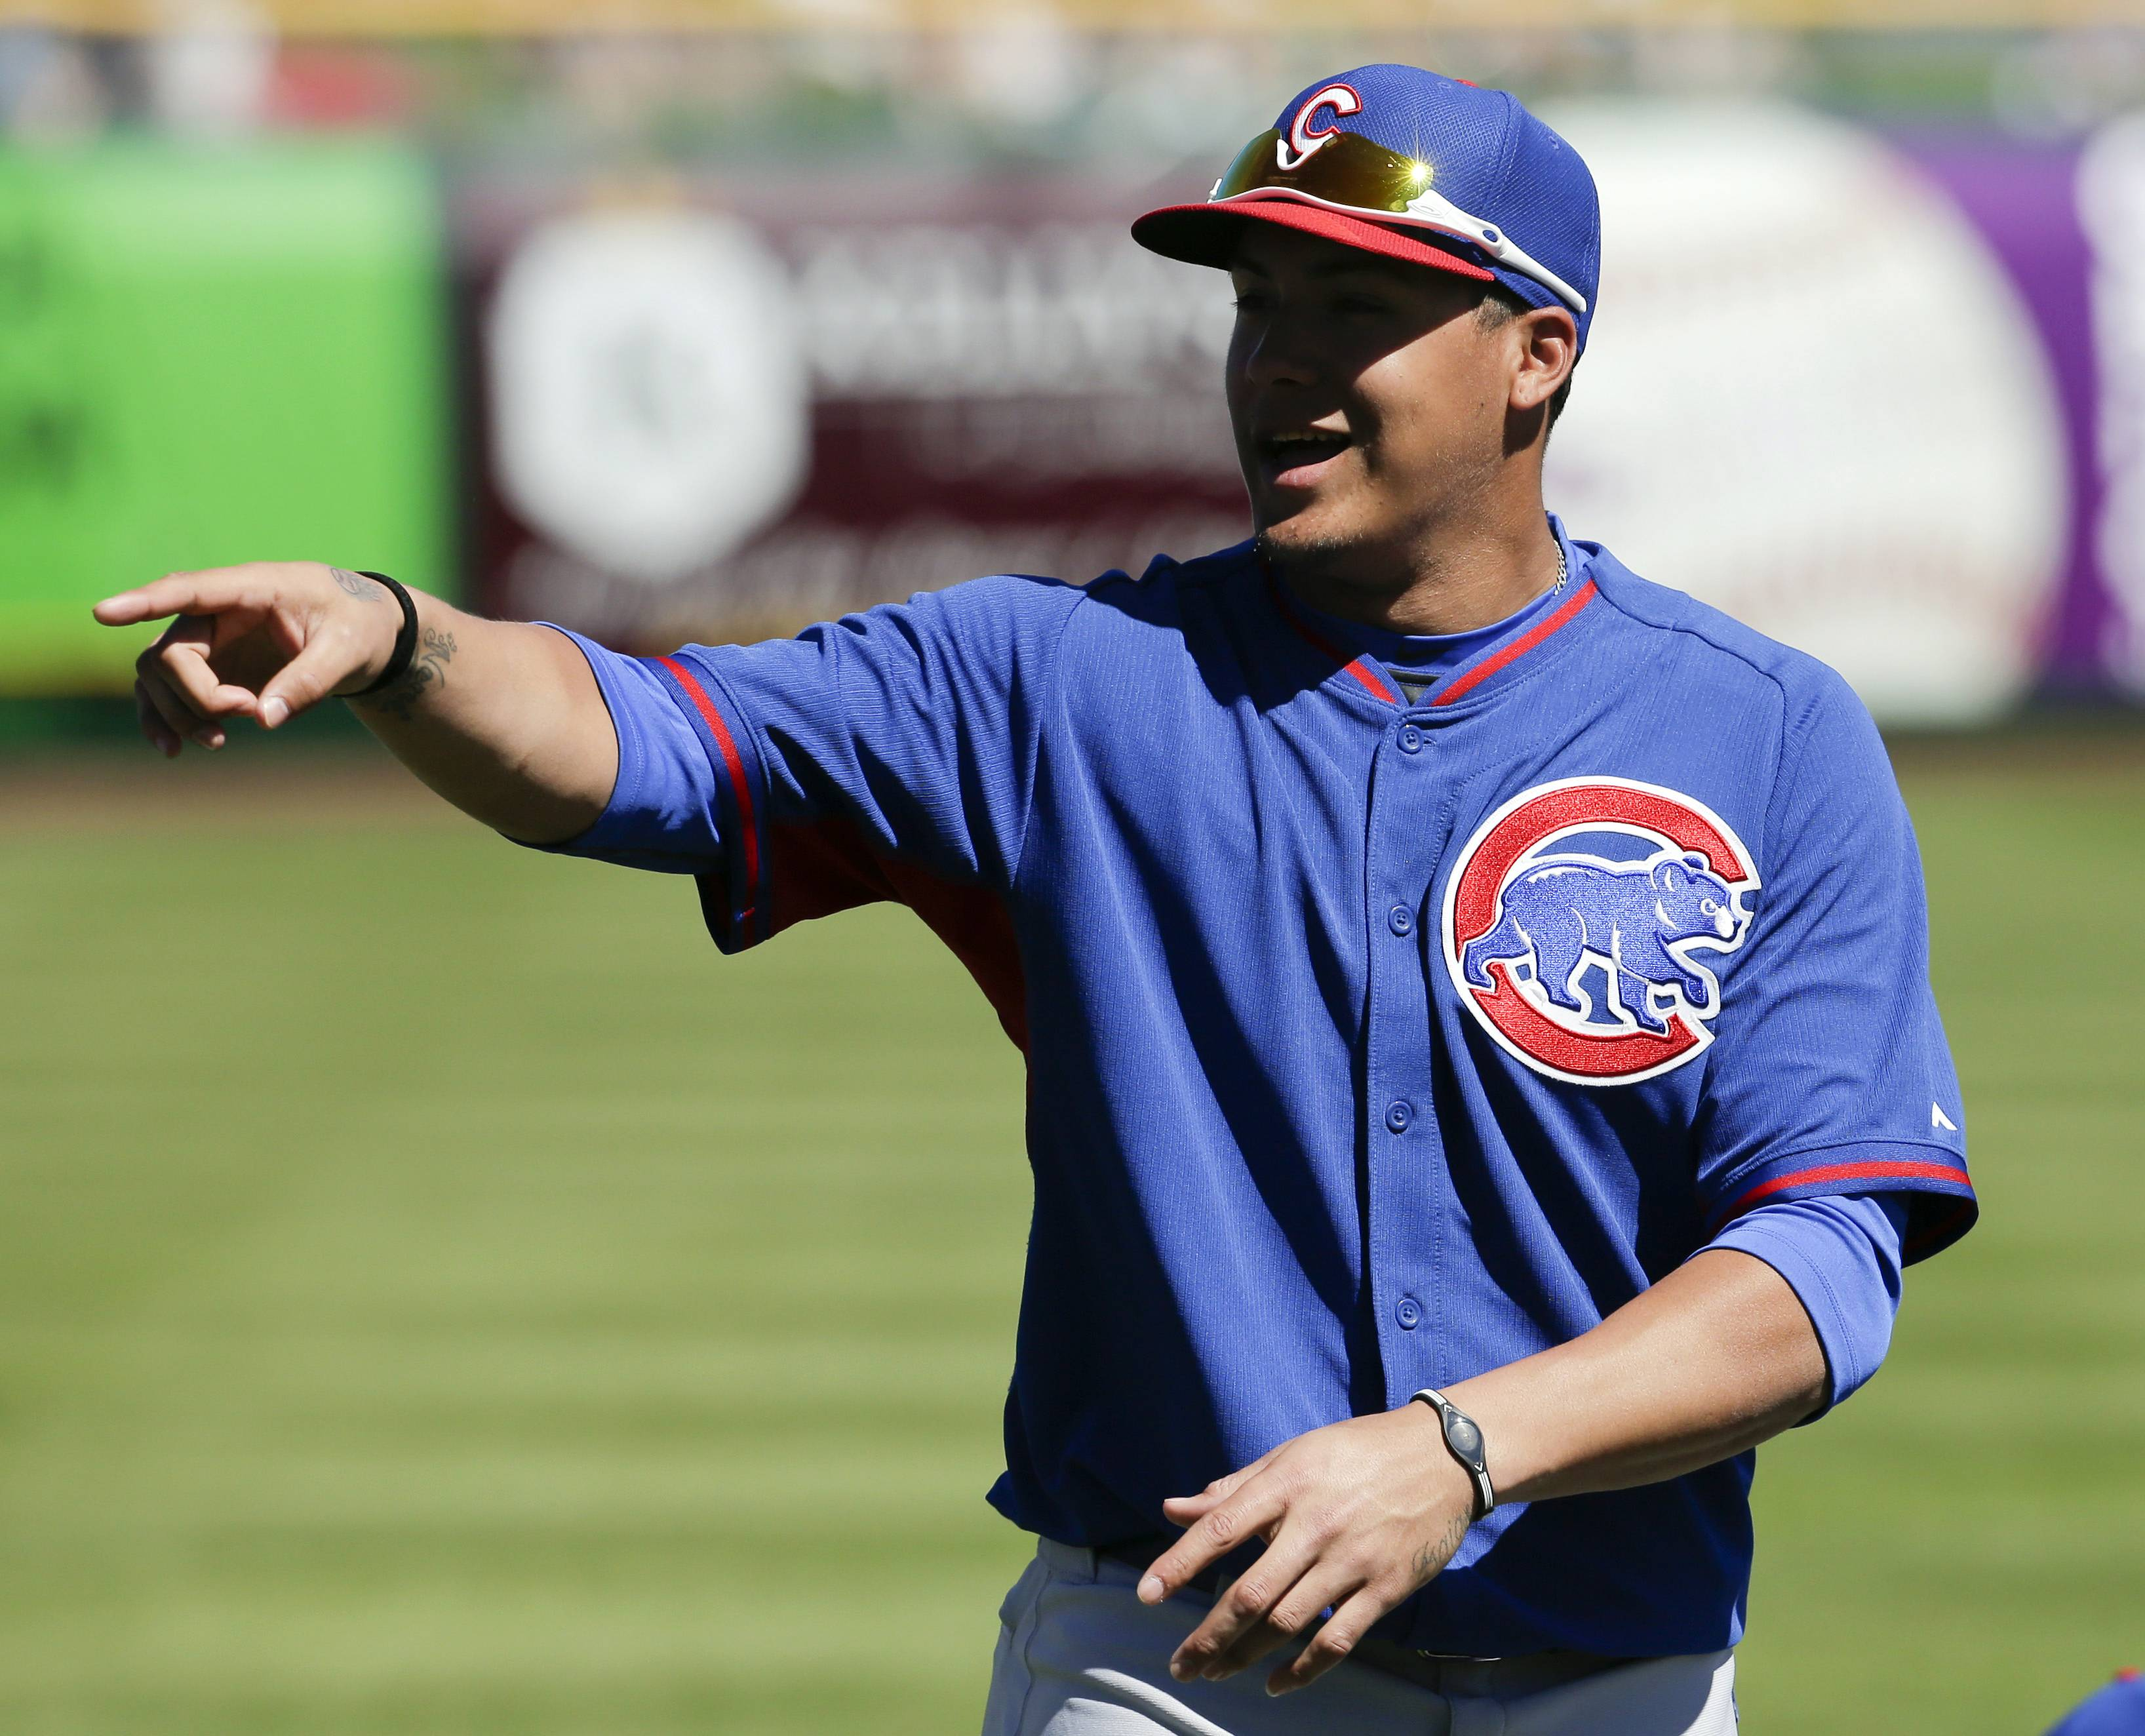 Cubs prospect Javier Baez is expected to point the way to better days ahead as gets ready to make his major-league debut.